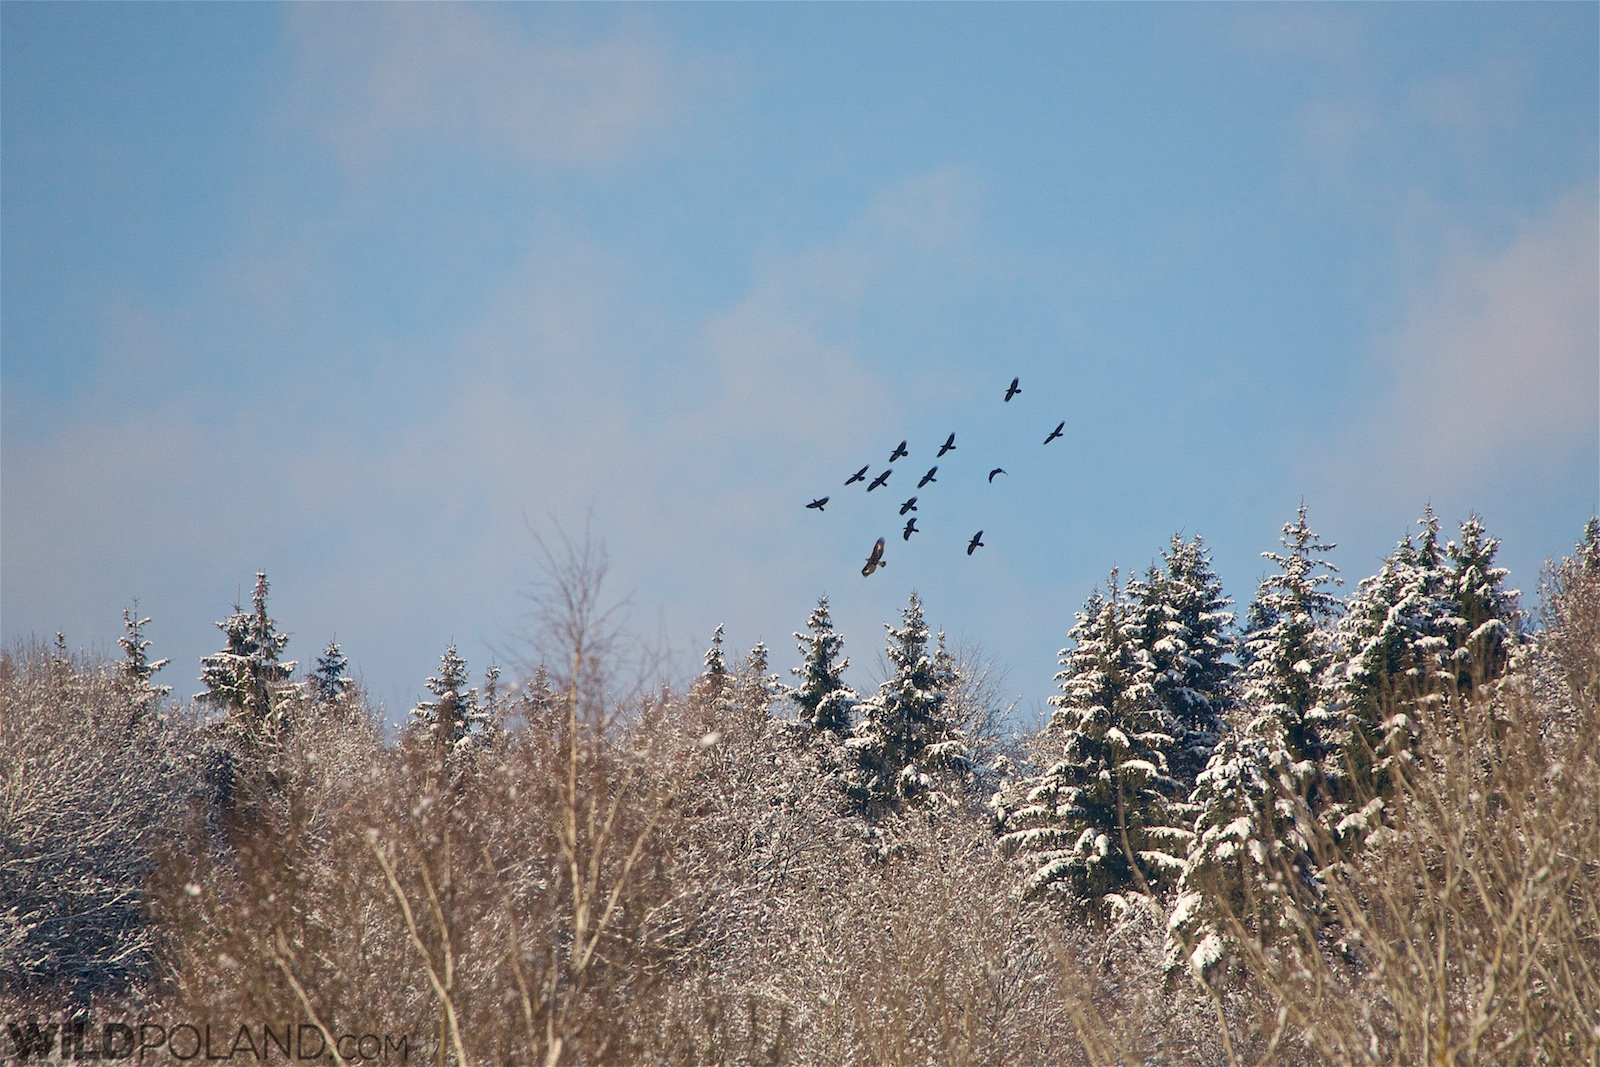 Golden Eagle mobbed by Ravens, Eastern Carpathians at wintertime. Photo by Murray Forbes